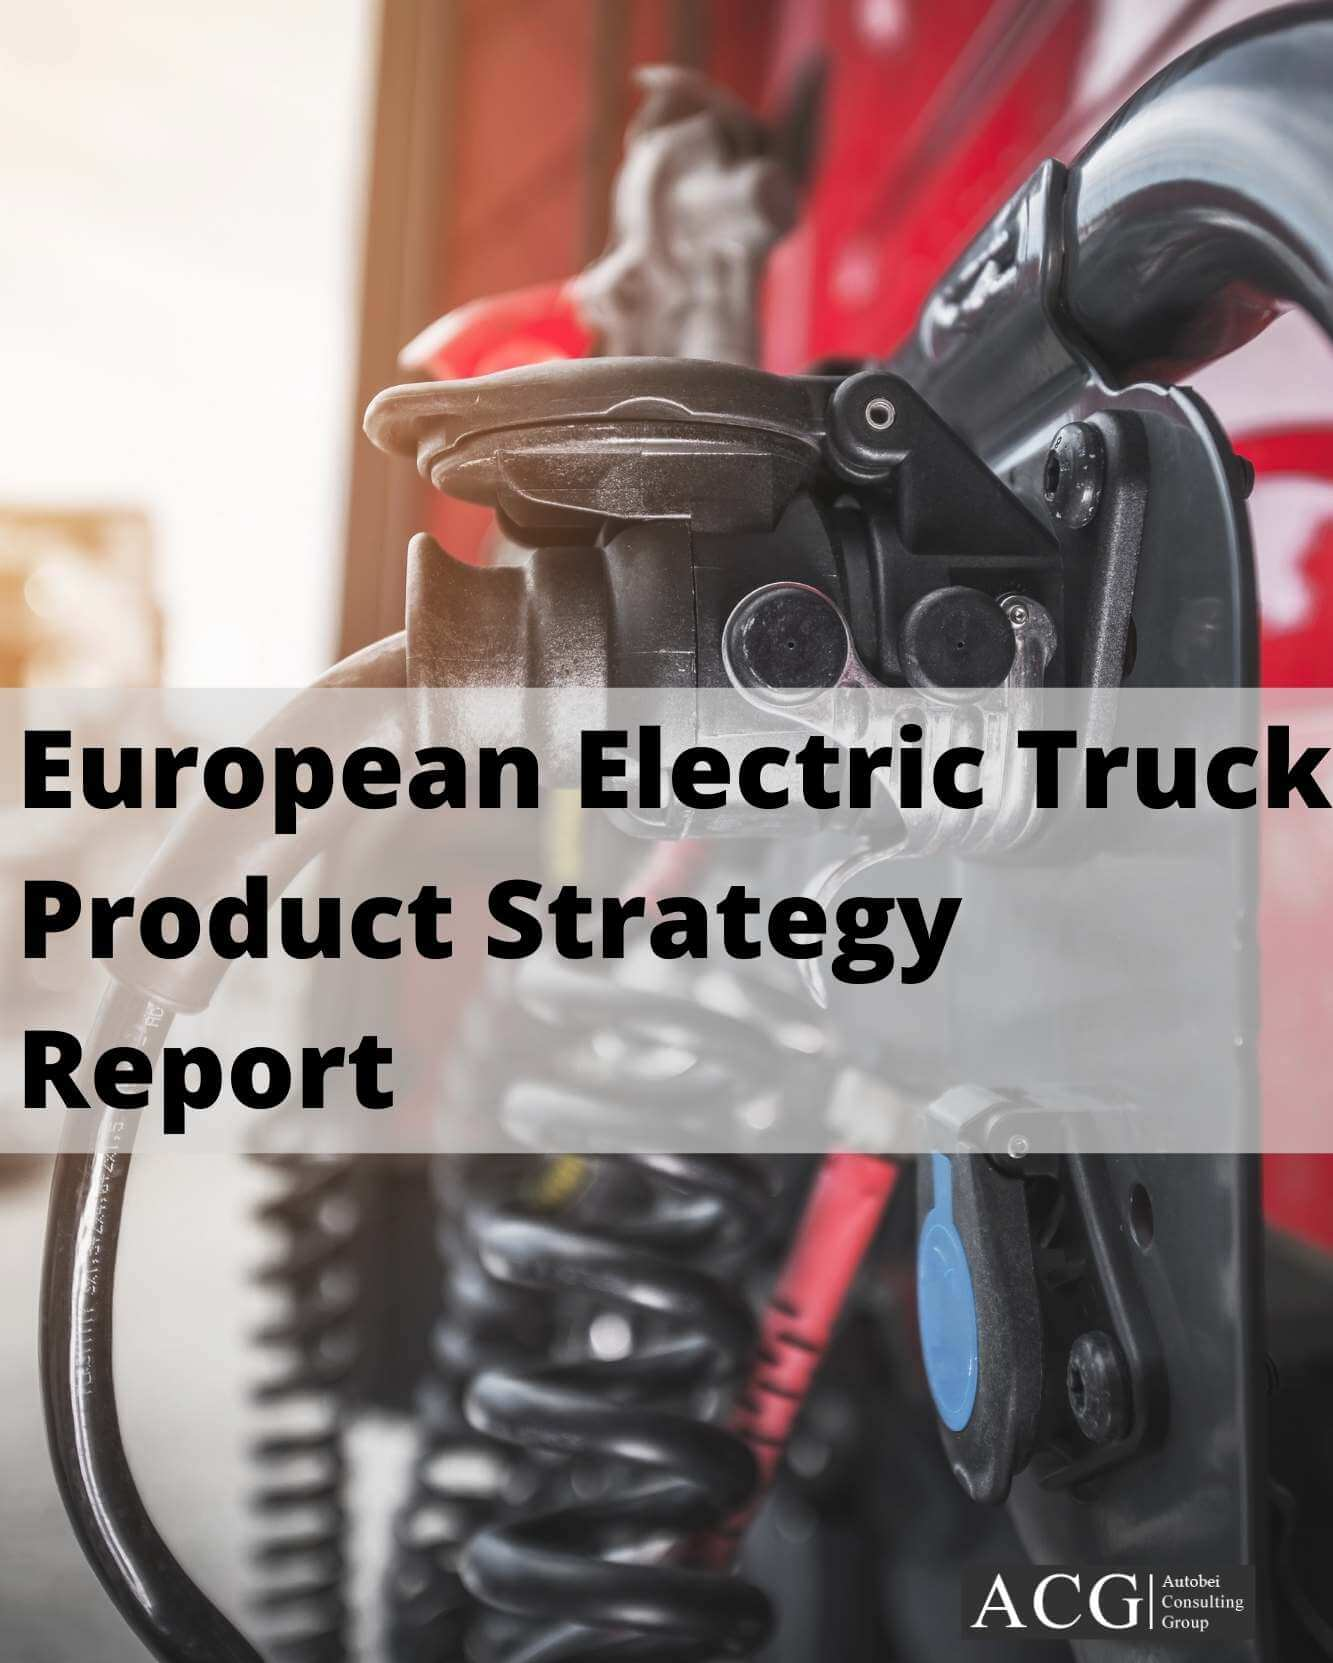 European Electric Truck Product Strategy Report